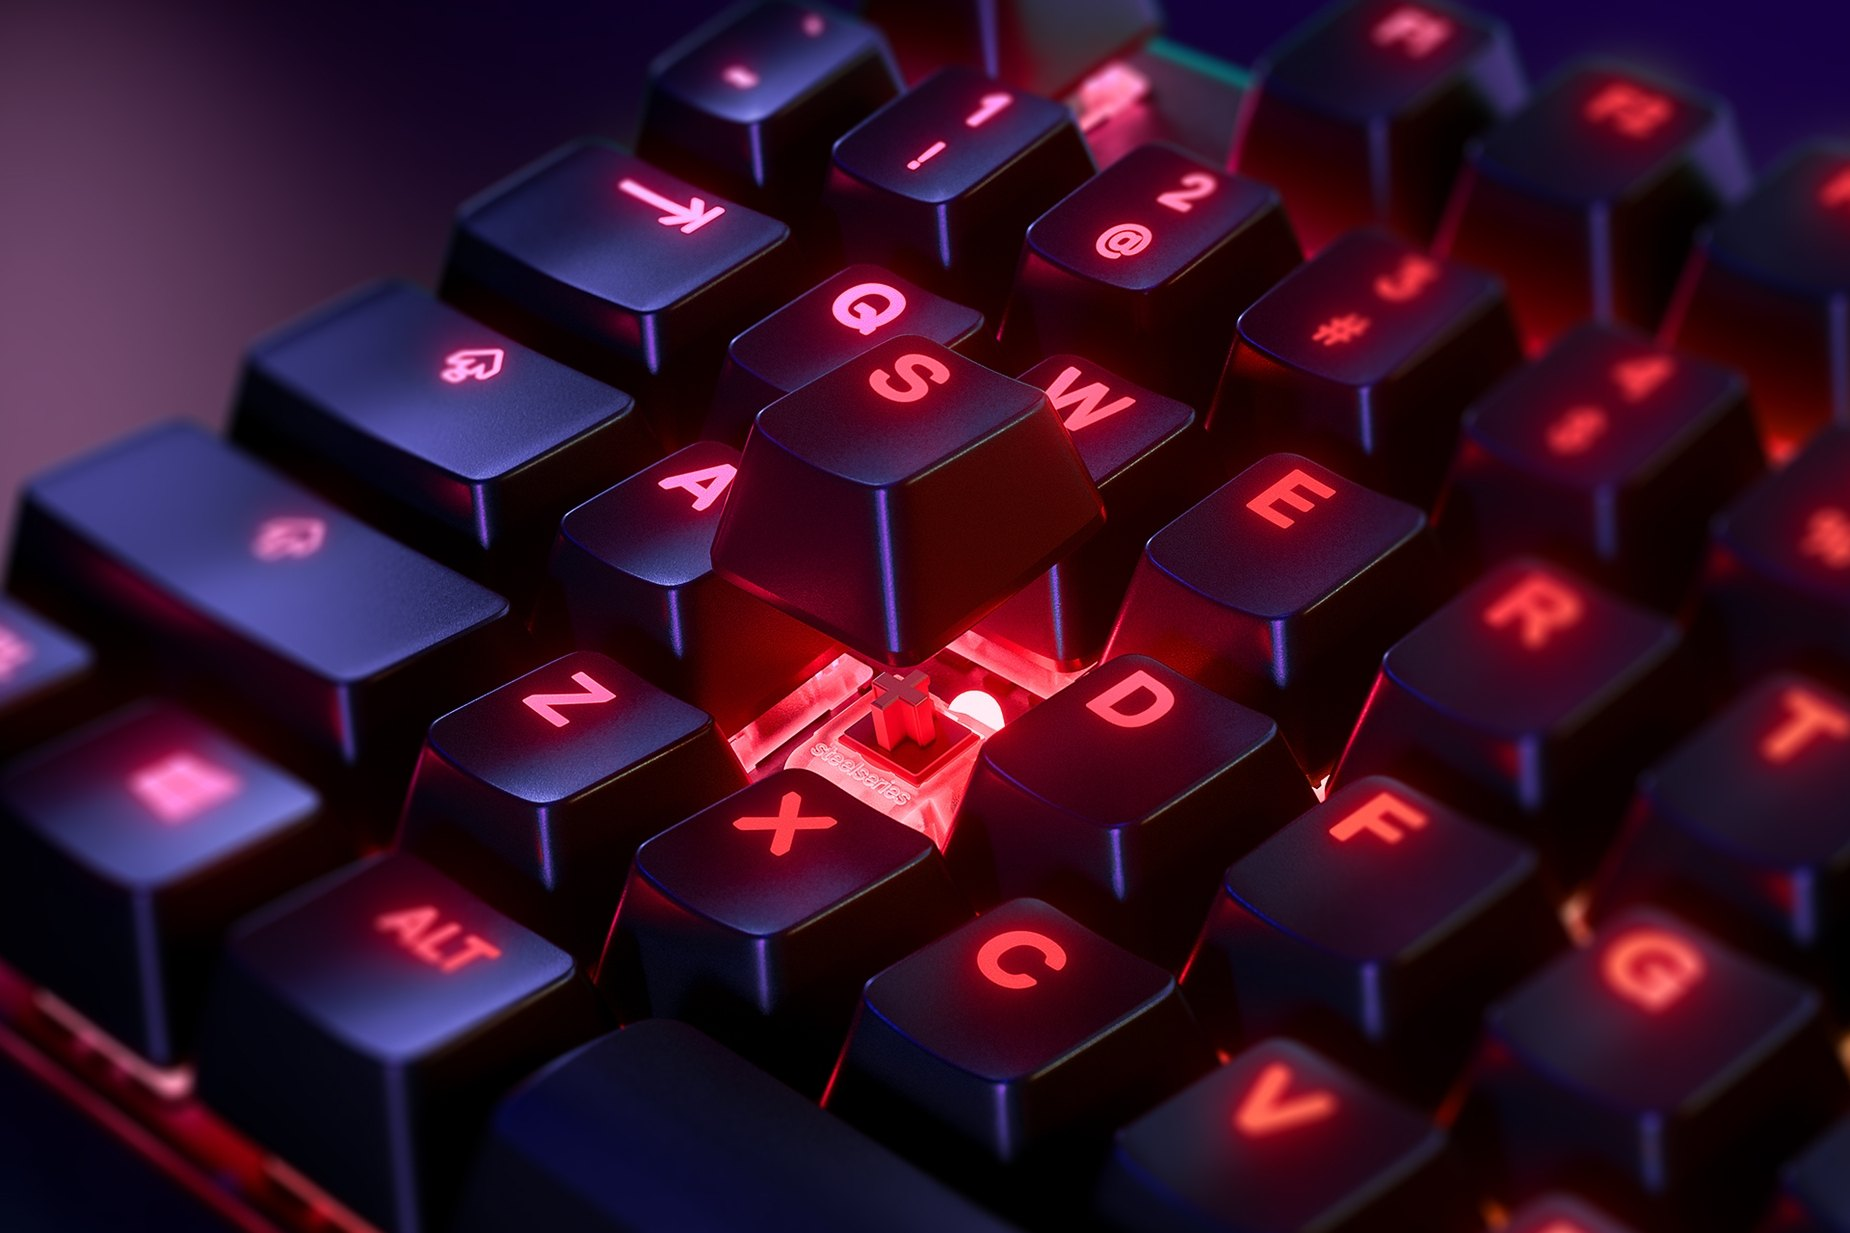 Zoomed in view of a single key on the German - Apex 7 TKL (красные переключатели) gaming keyboard, the key is raised up to show the SteelSeries QX2 Mechanical RGB Switch underneath